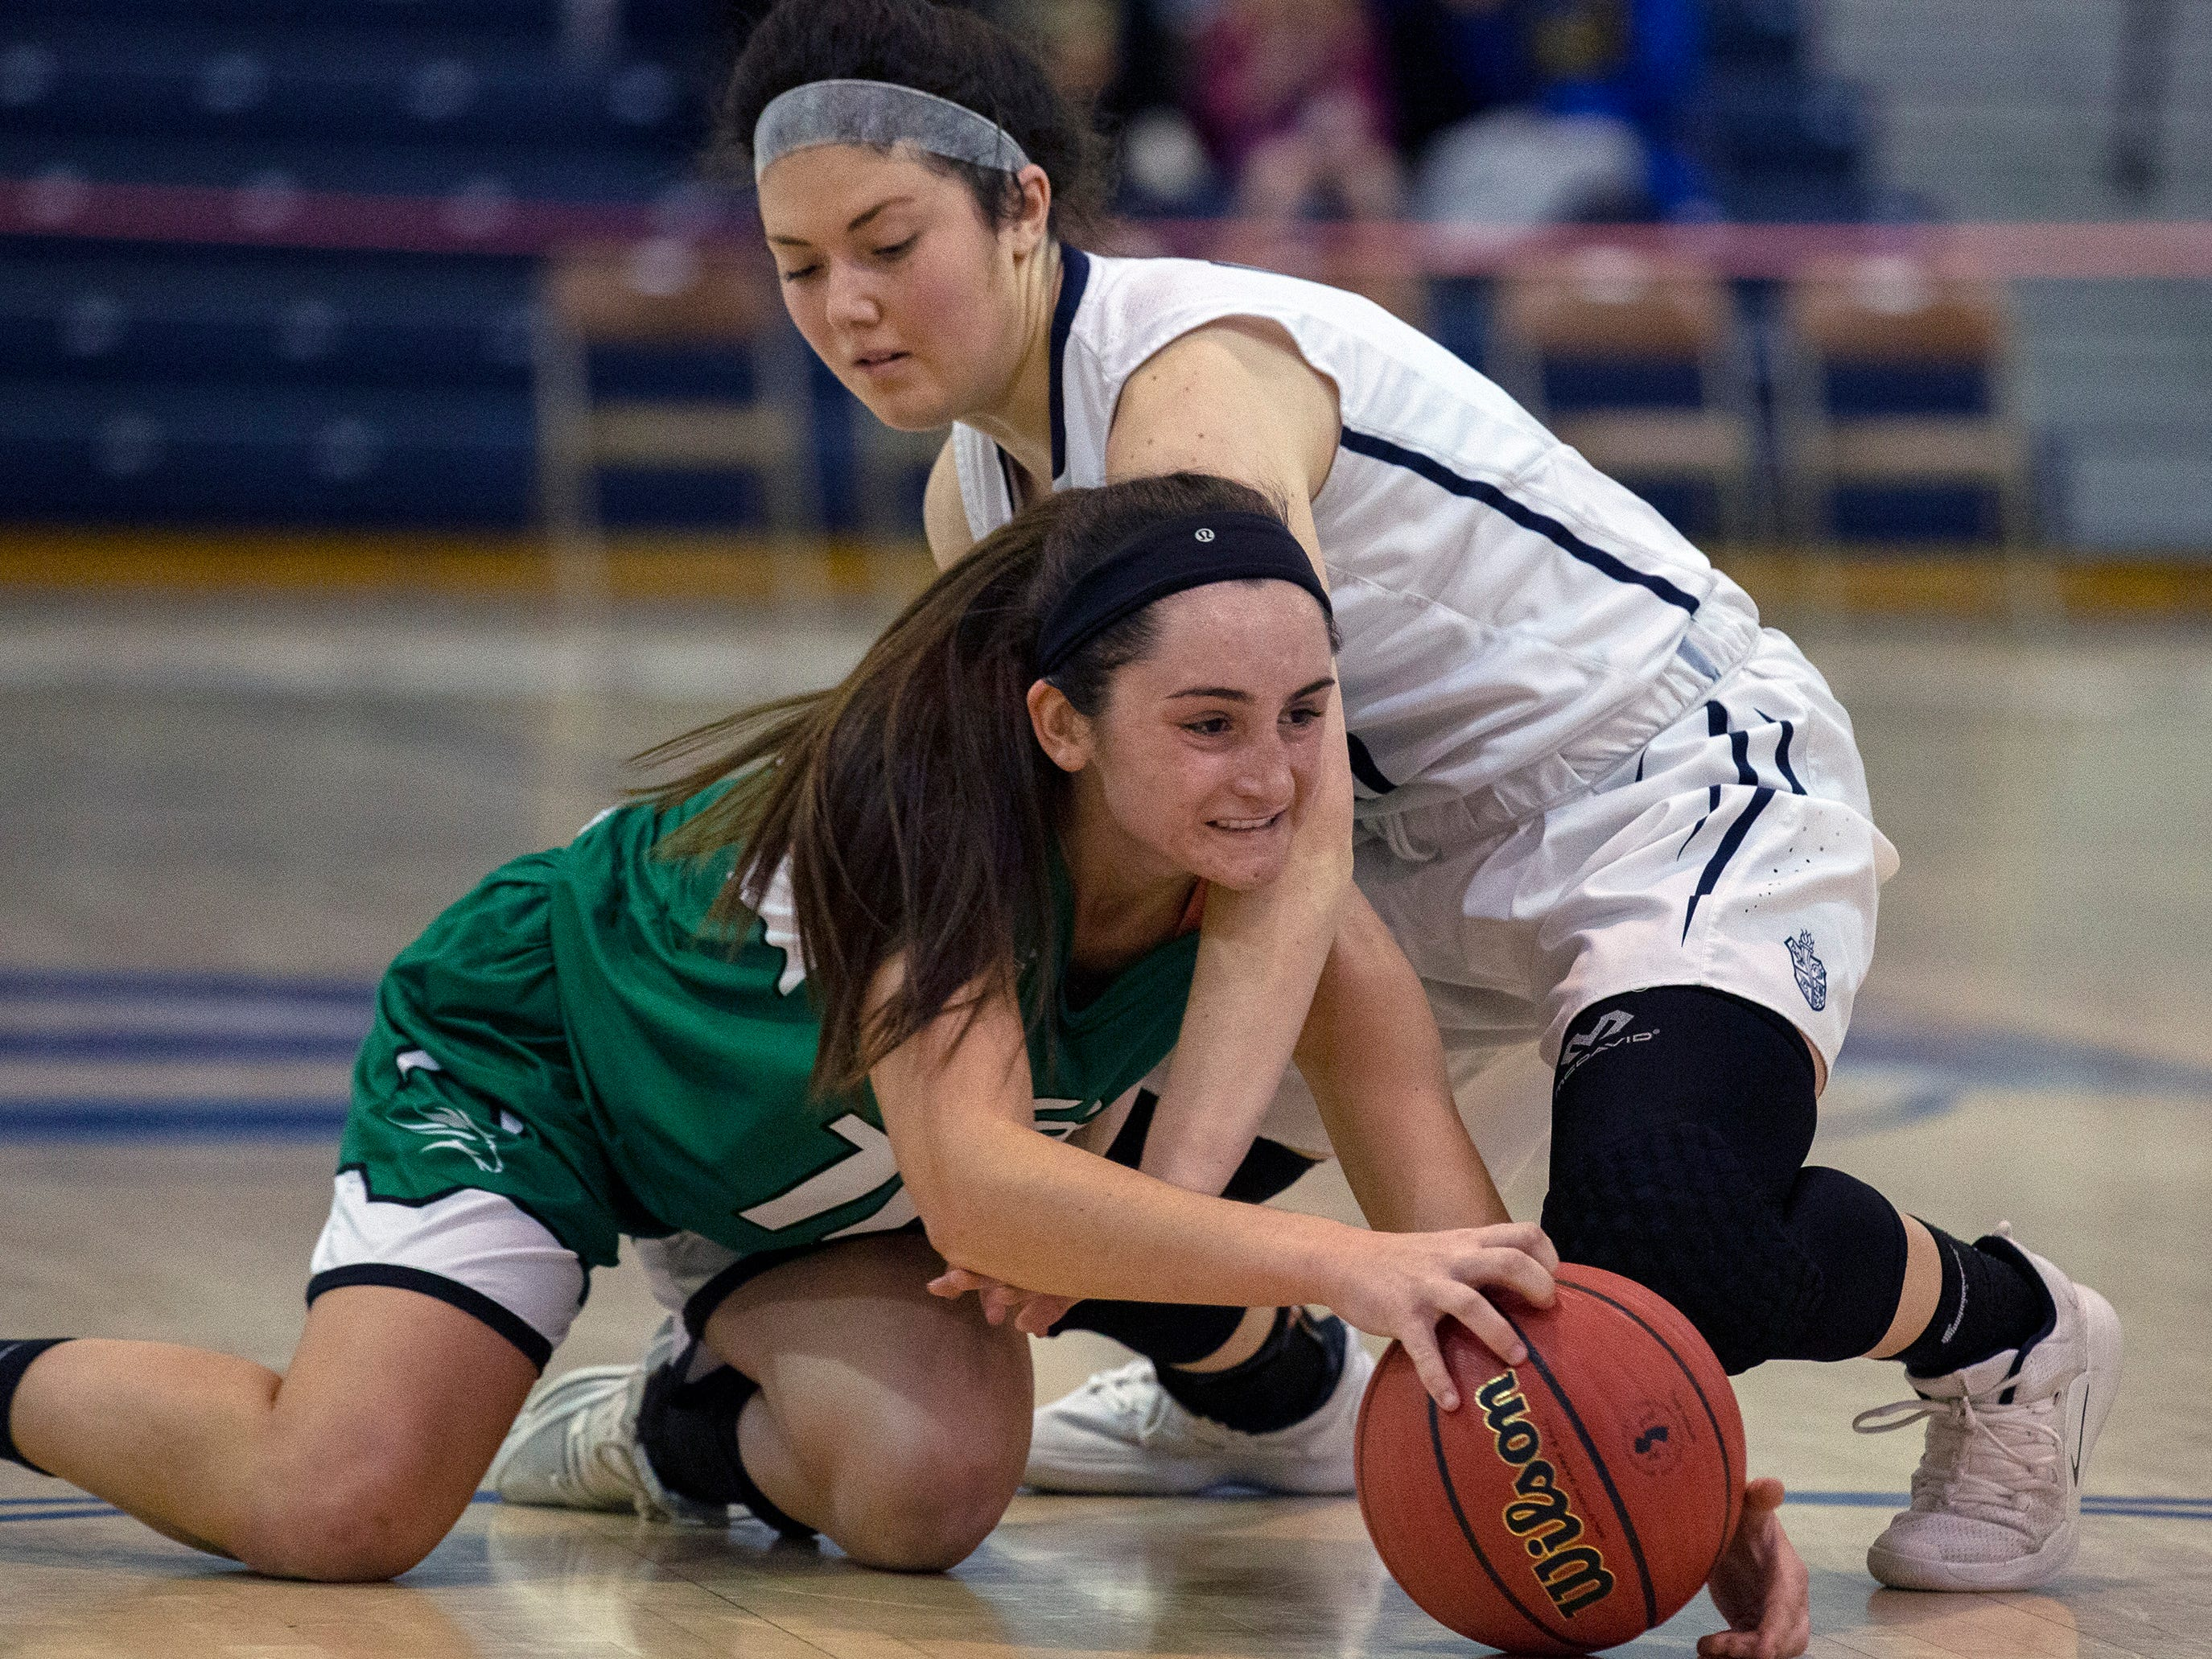 10-15 Chatham Girls Basketball vs Mainland in Girls Group III Final in Toms River on March 10, 2019.